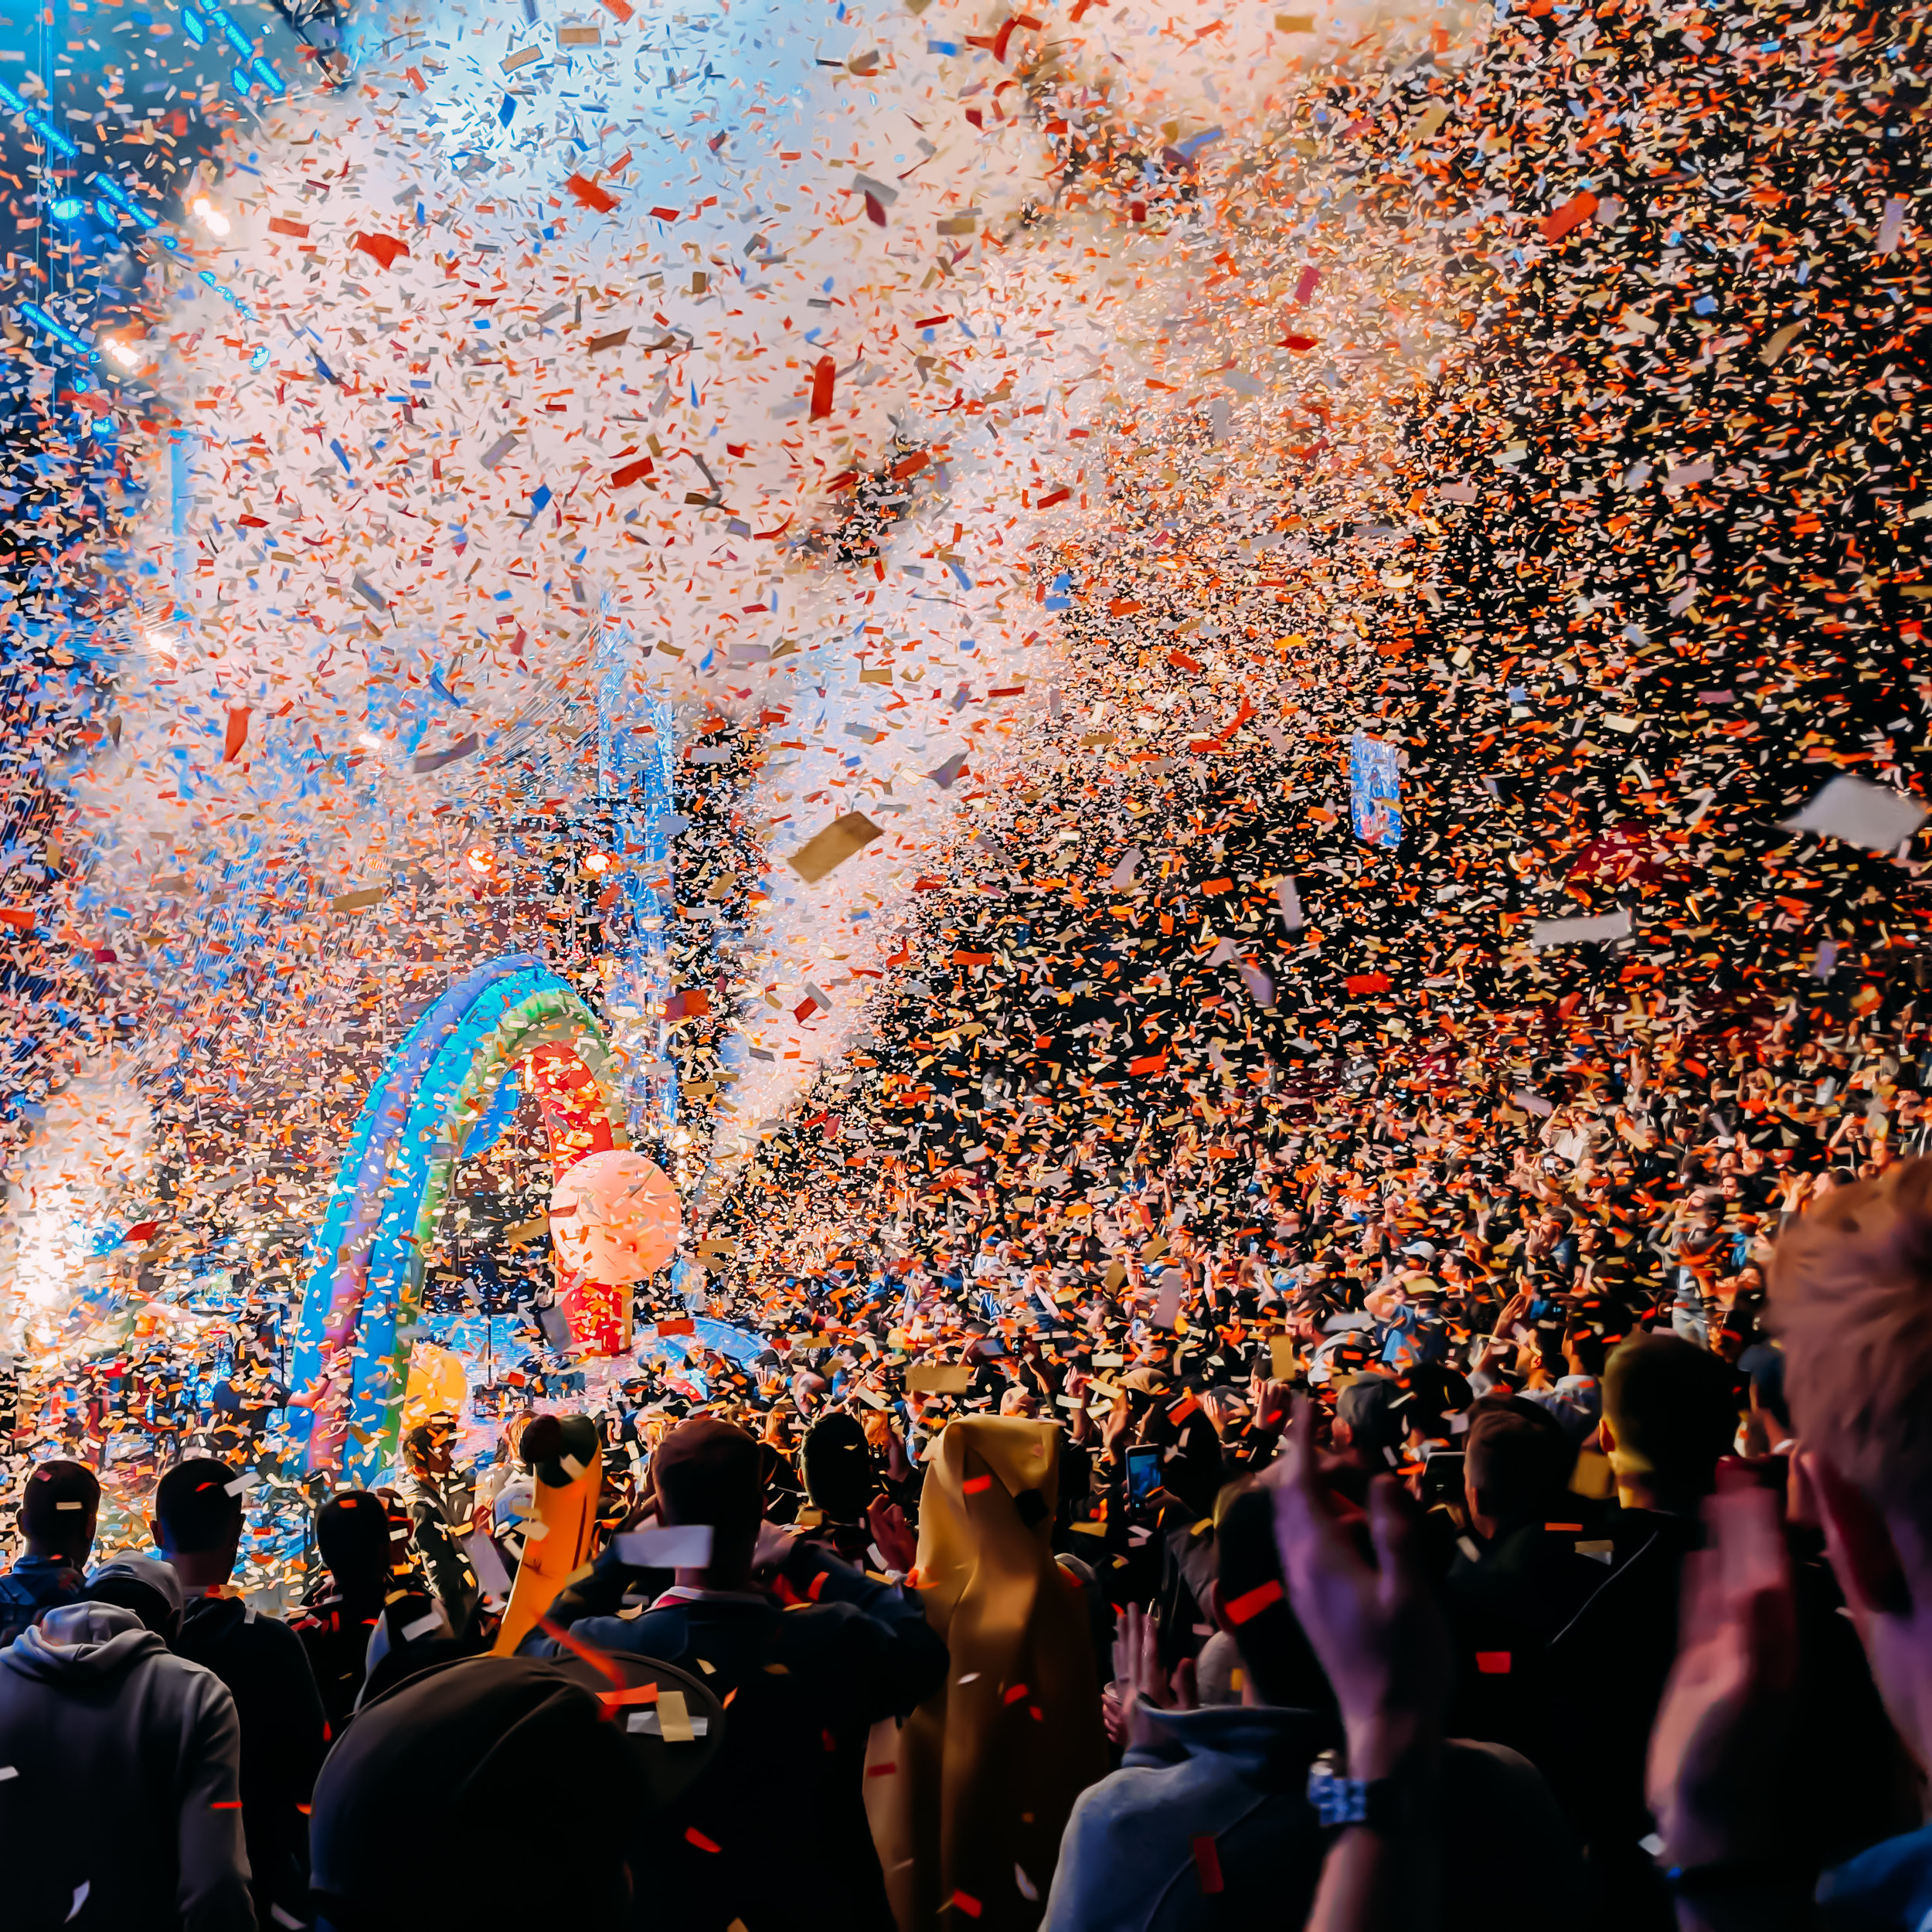 The Flaming lips @ Google I/O 2019 - The Flaming Lips perform a one-of-a-kind song with the help of a bowl of fruit, AI, and the crowd at Google I/O.